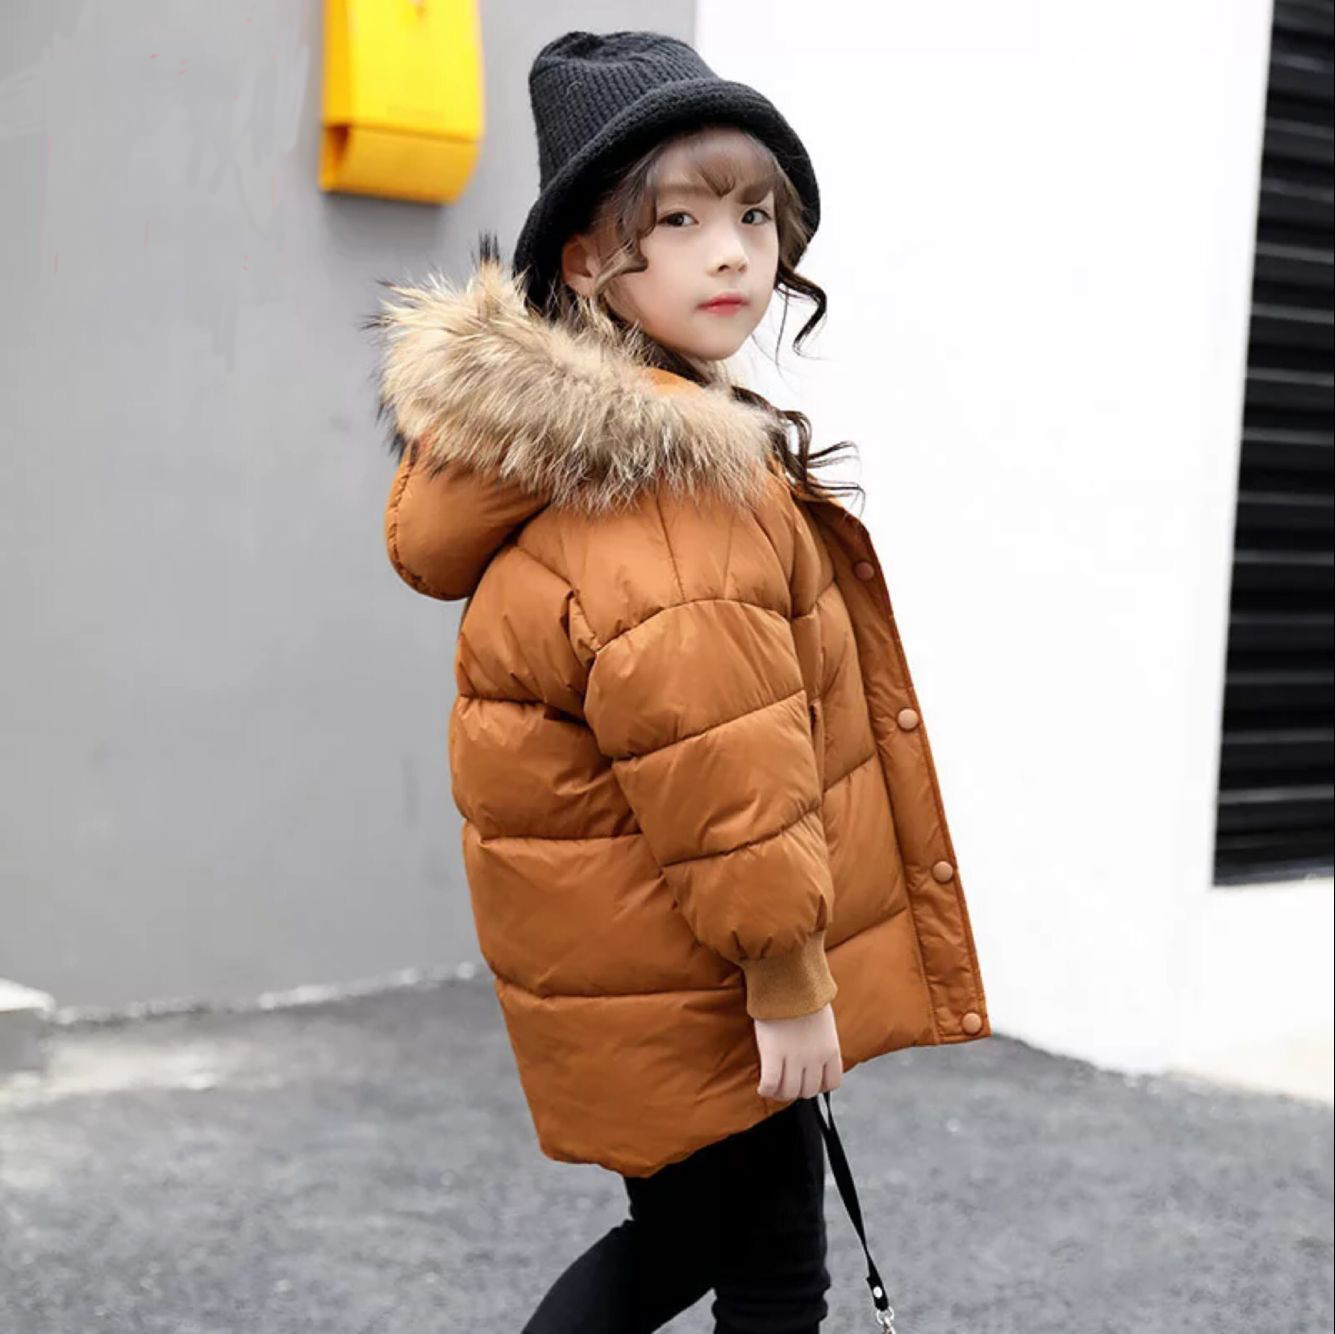 NeuSud Kids Official Store 2017 New Baby Winter Girls Cotton Coat Children Thicken Jackets Kids Warm Outercoat Toddler  Padded Jacket,3-8Y,#2359